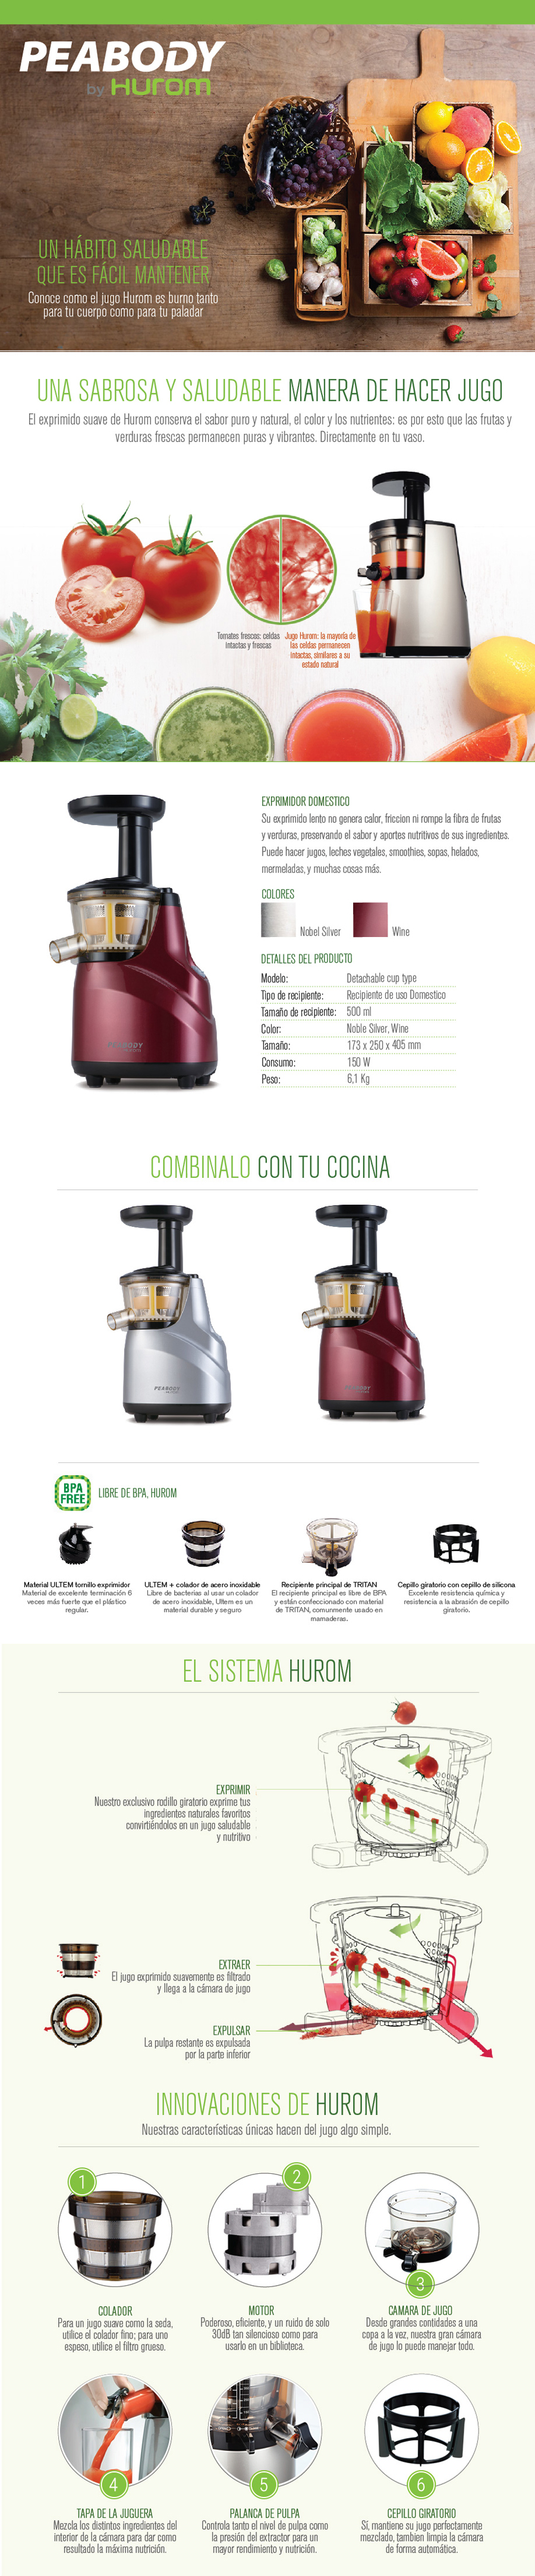 Juguera Slow Juicer Pe-hsj Peabody By Hurom Domestica promo $ 7649.1 - Ansila store